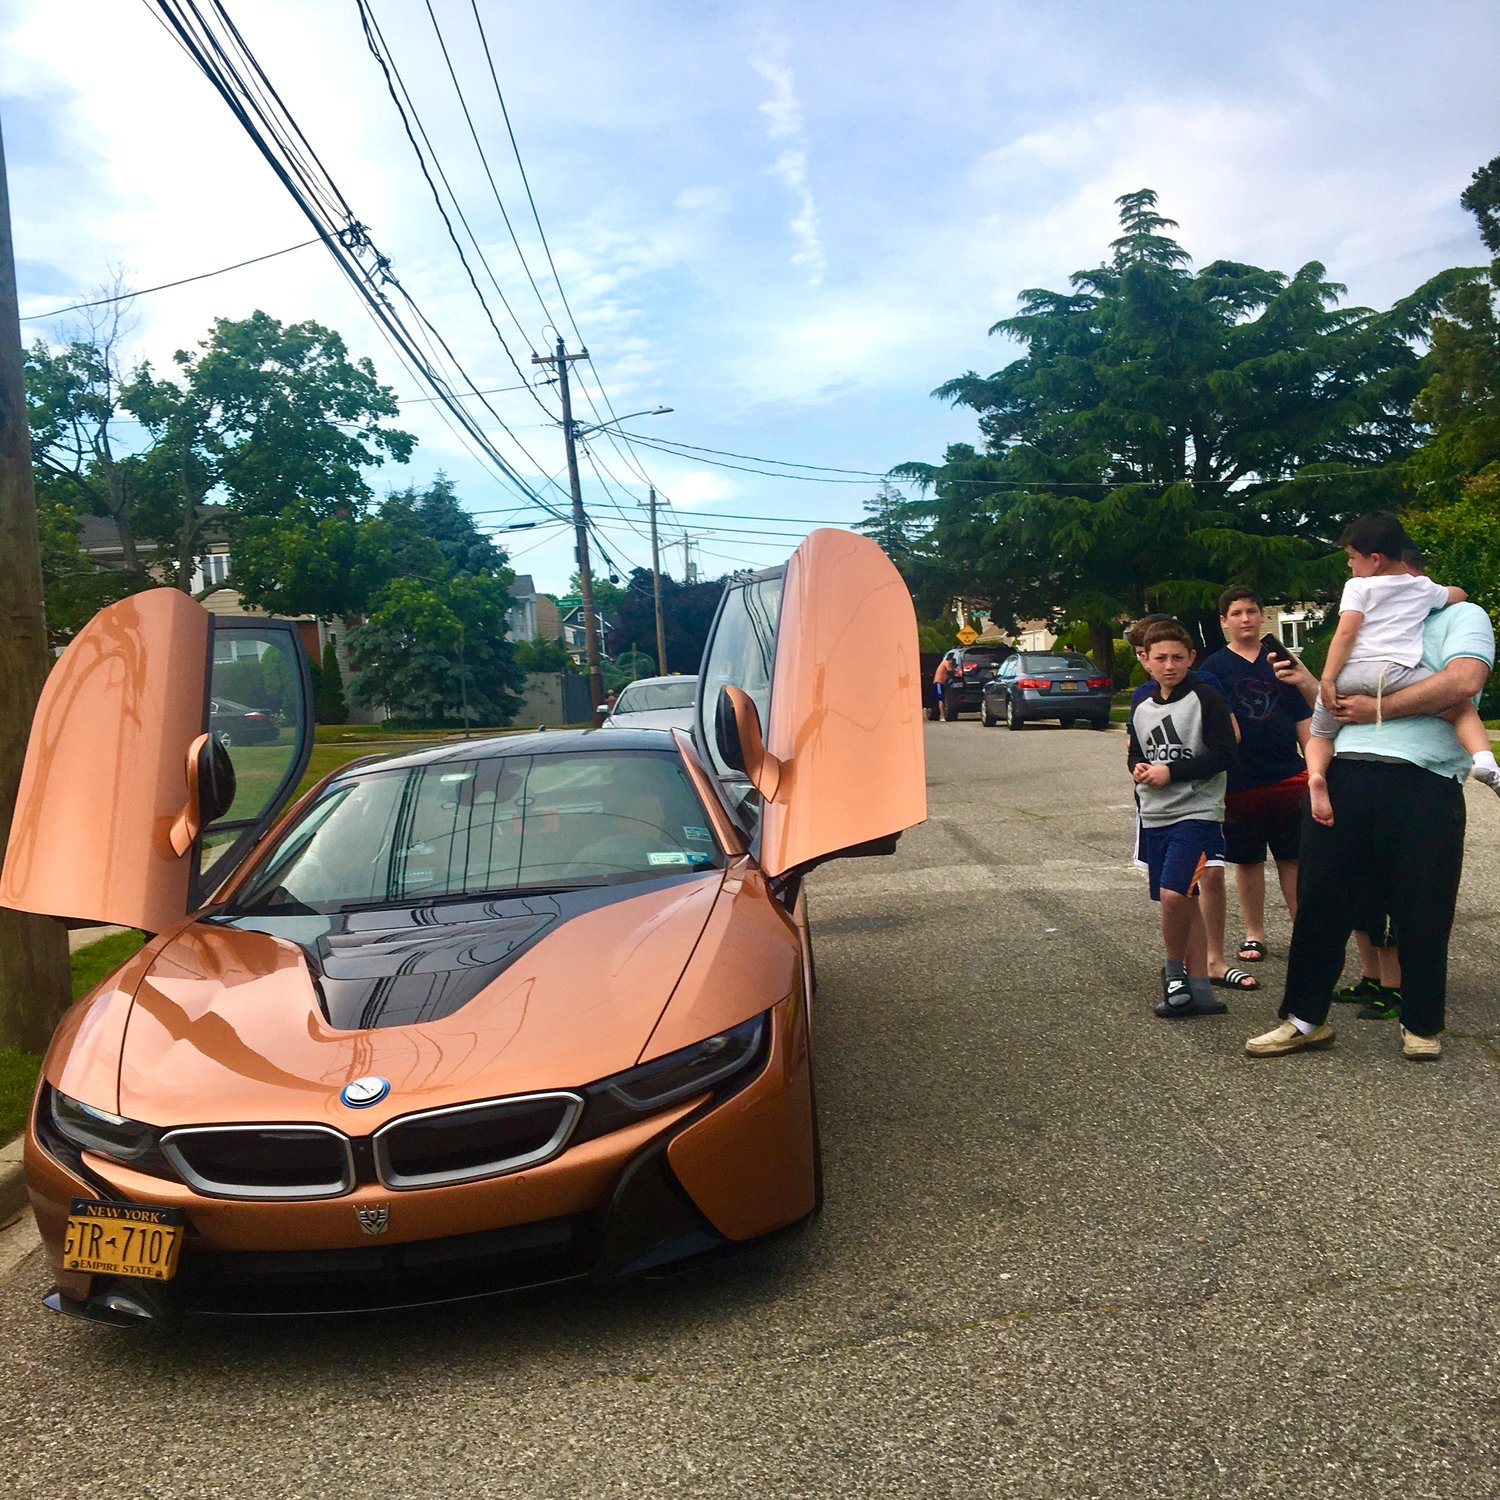 Jeremy and his brothers marveled at the BMW i8.